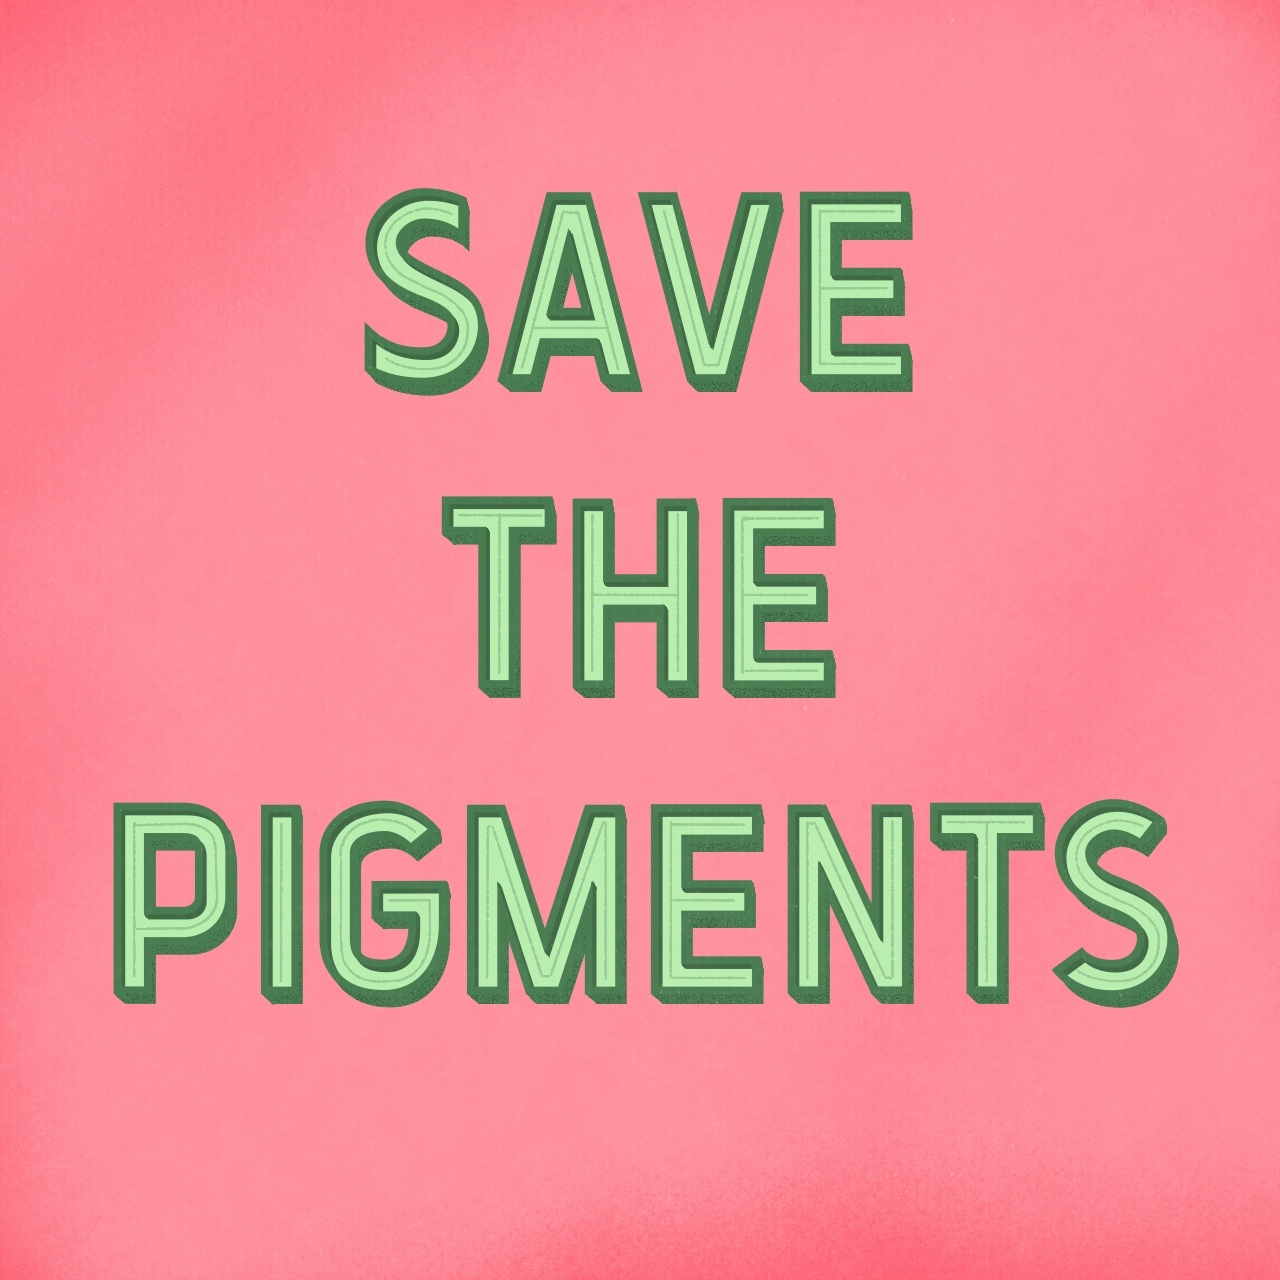 save the pigments